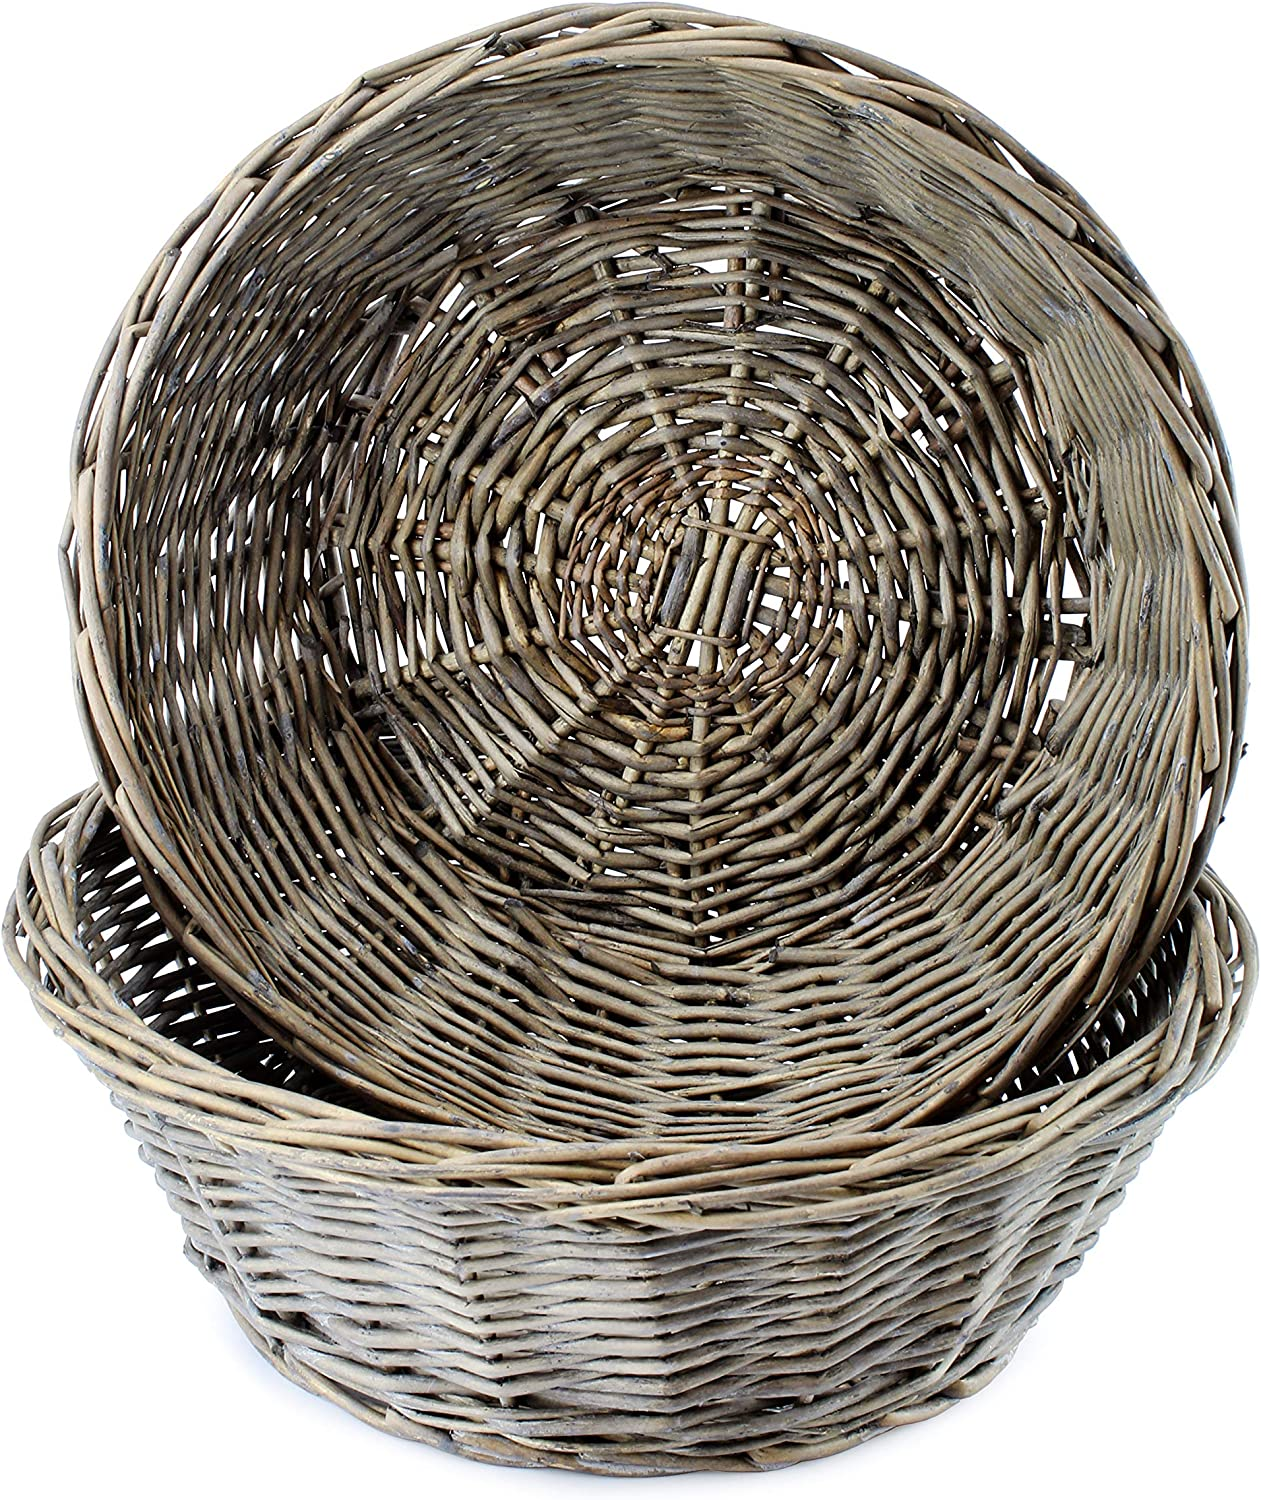 AuldHome Gray Washed Bread Baskets (2-Pack), Farmhouse Rustic Woven Wicker Round Basket for Kitchen, Home and Storage